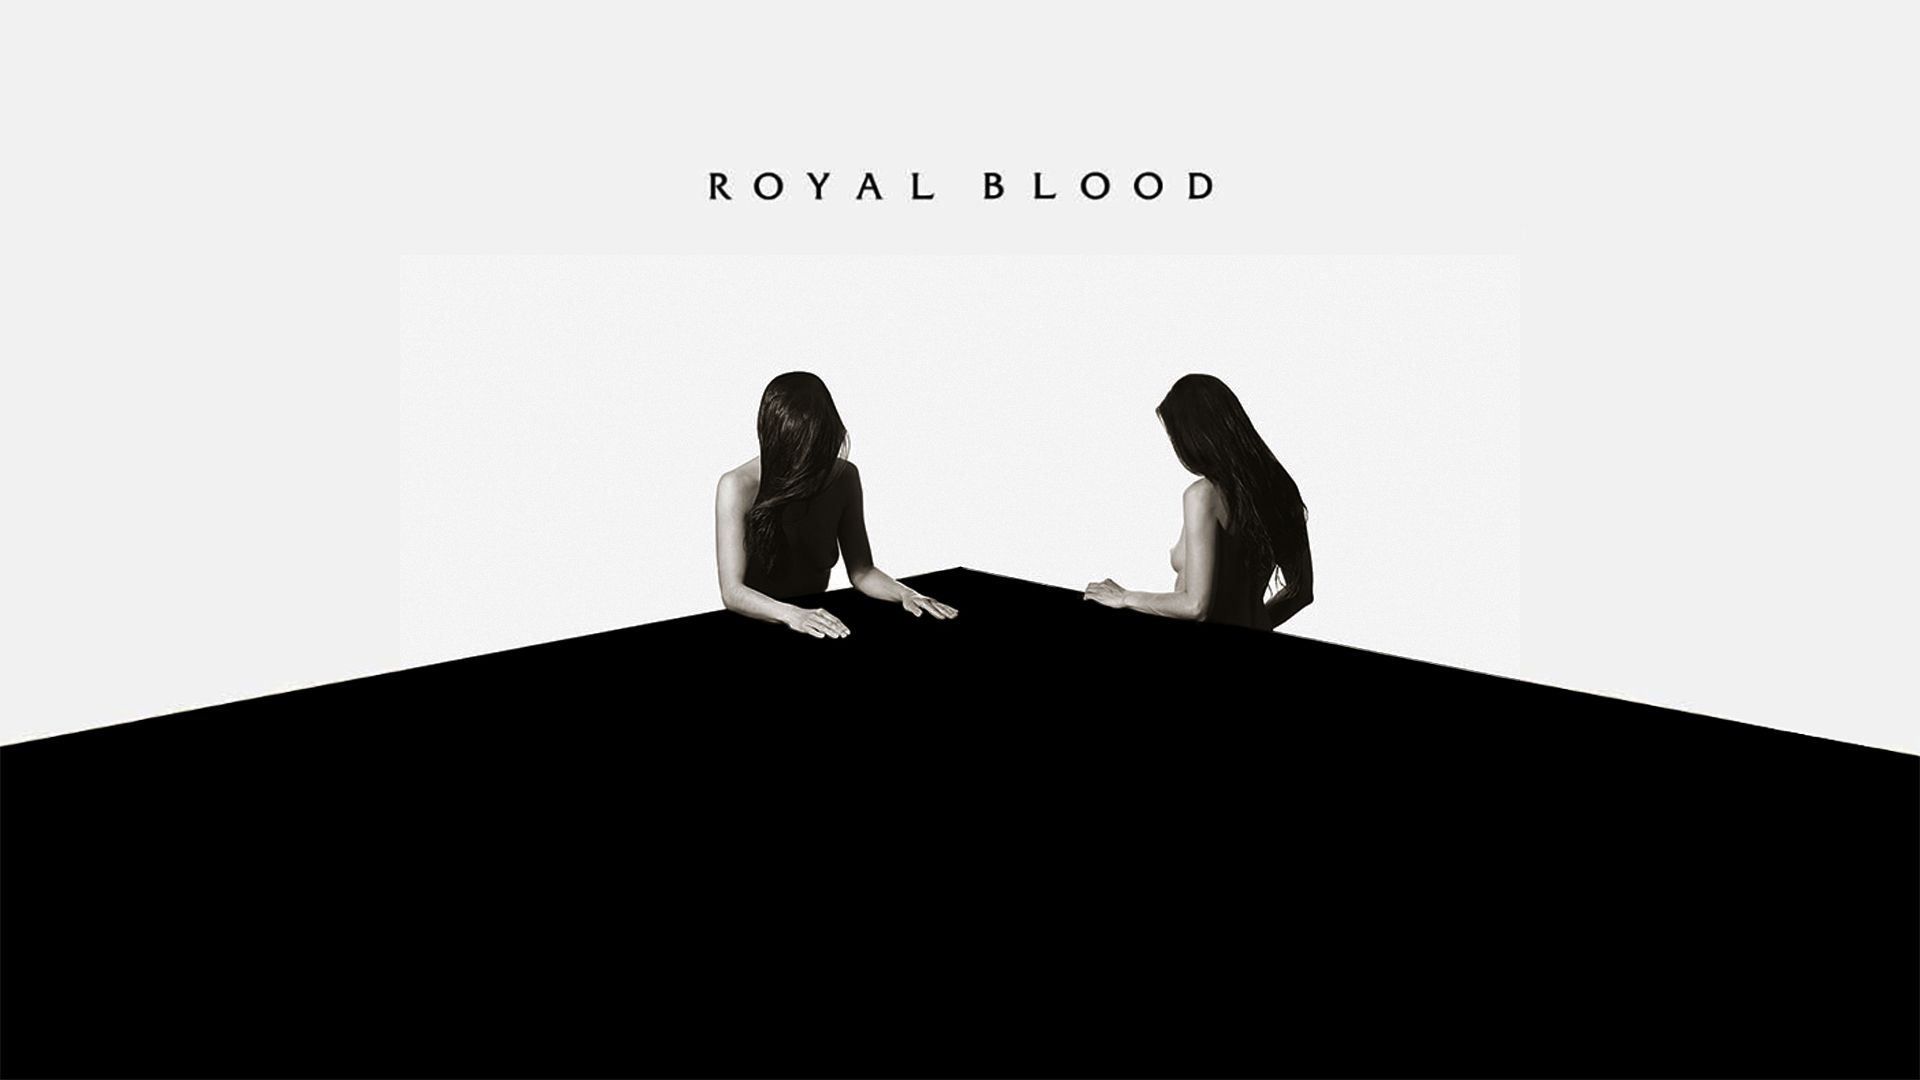 Royal Blood's